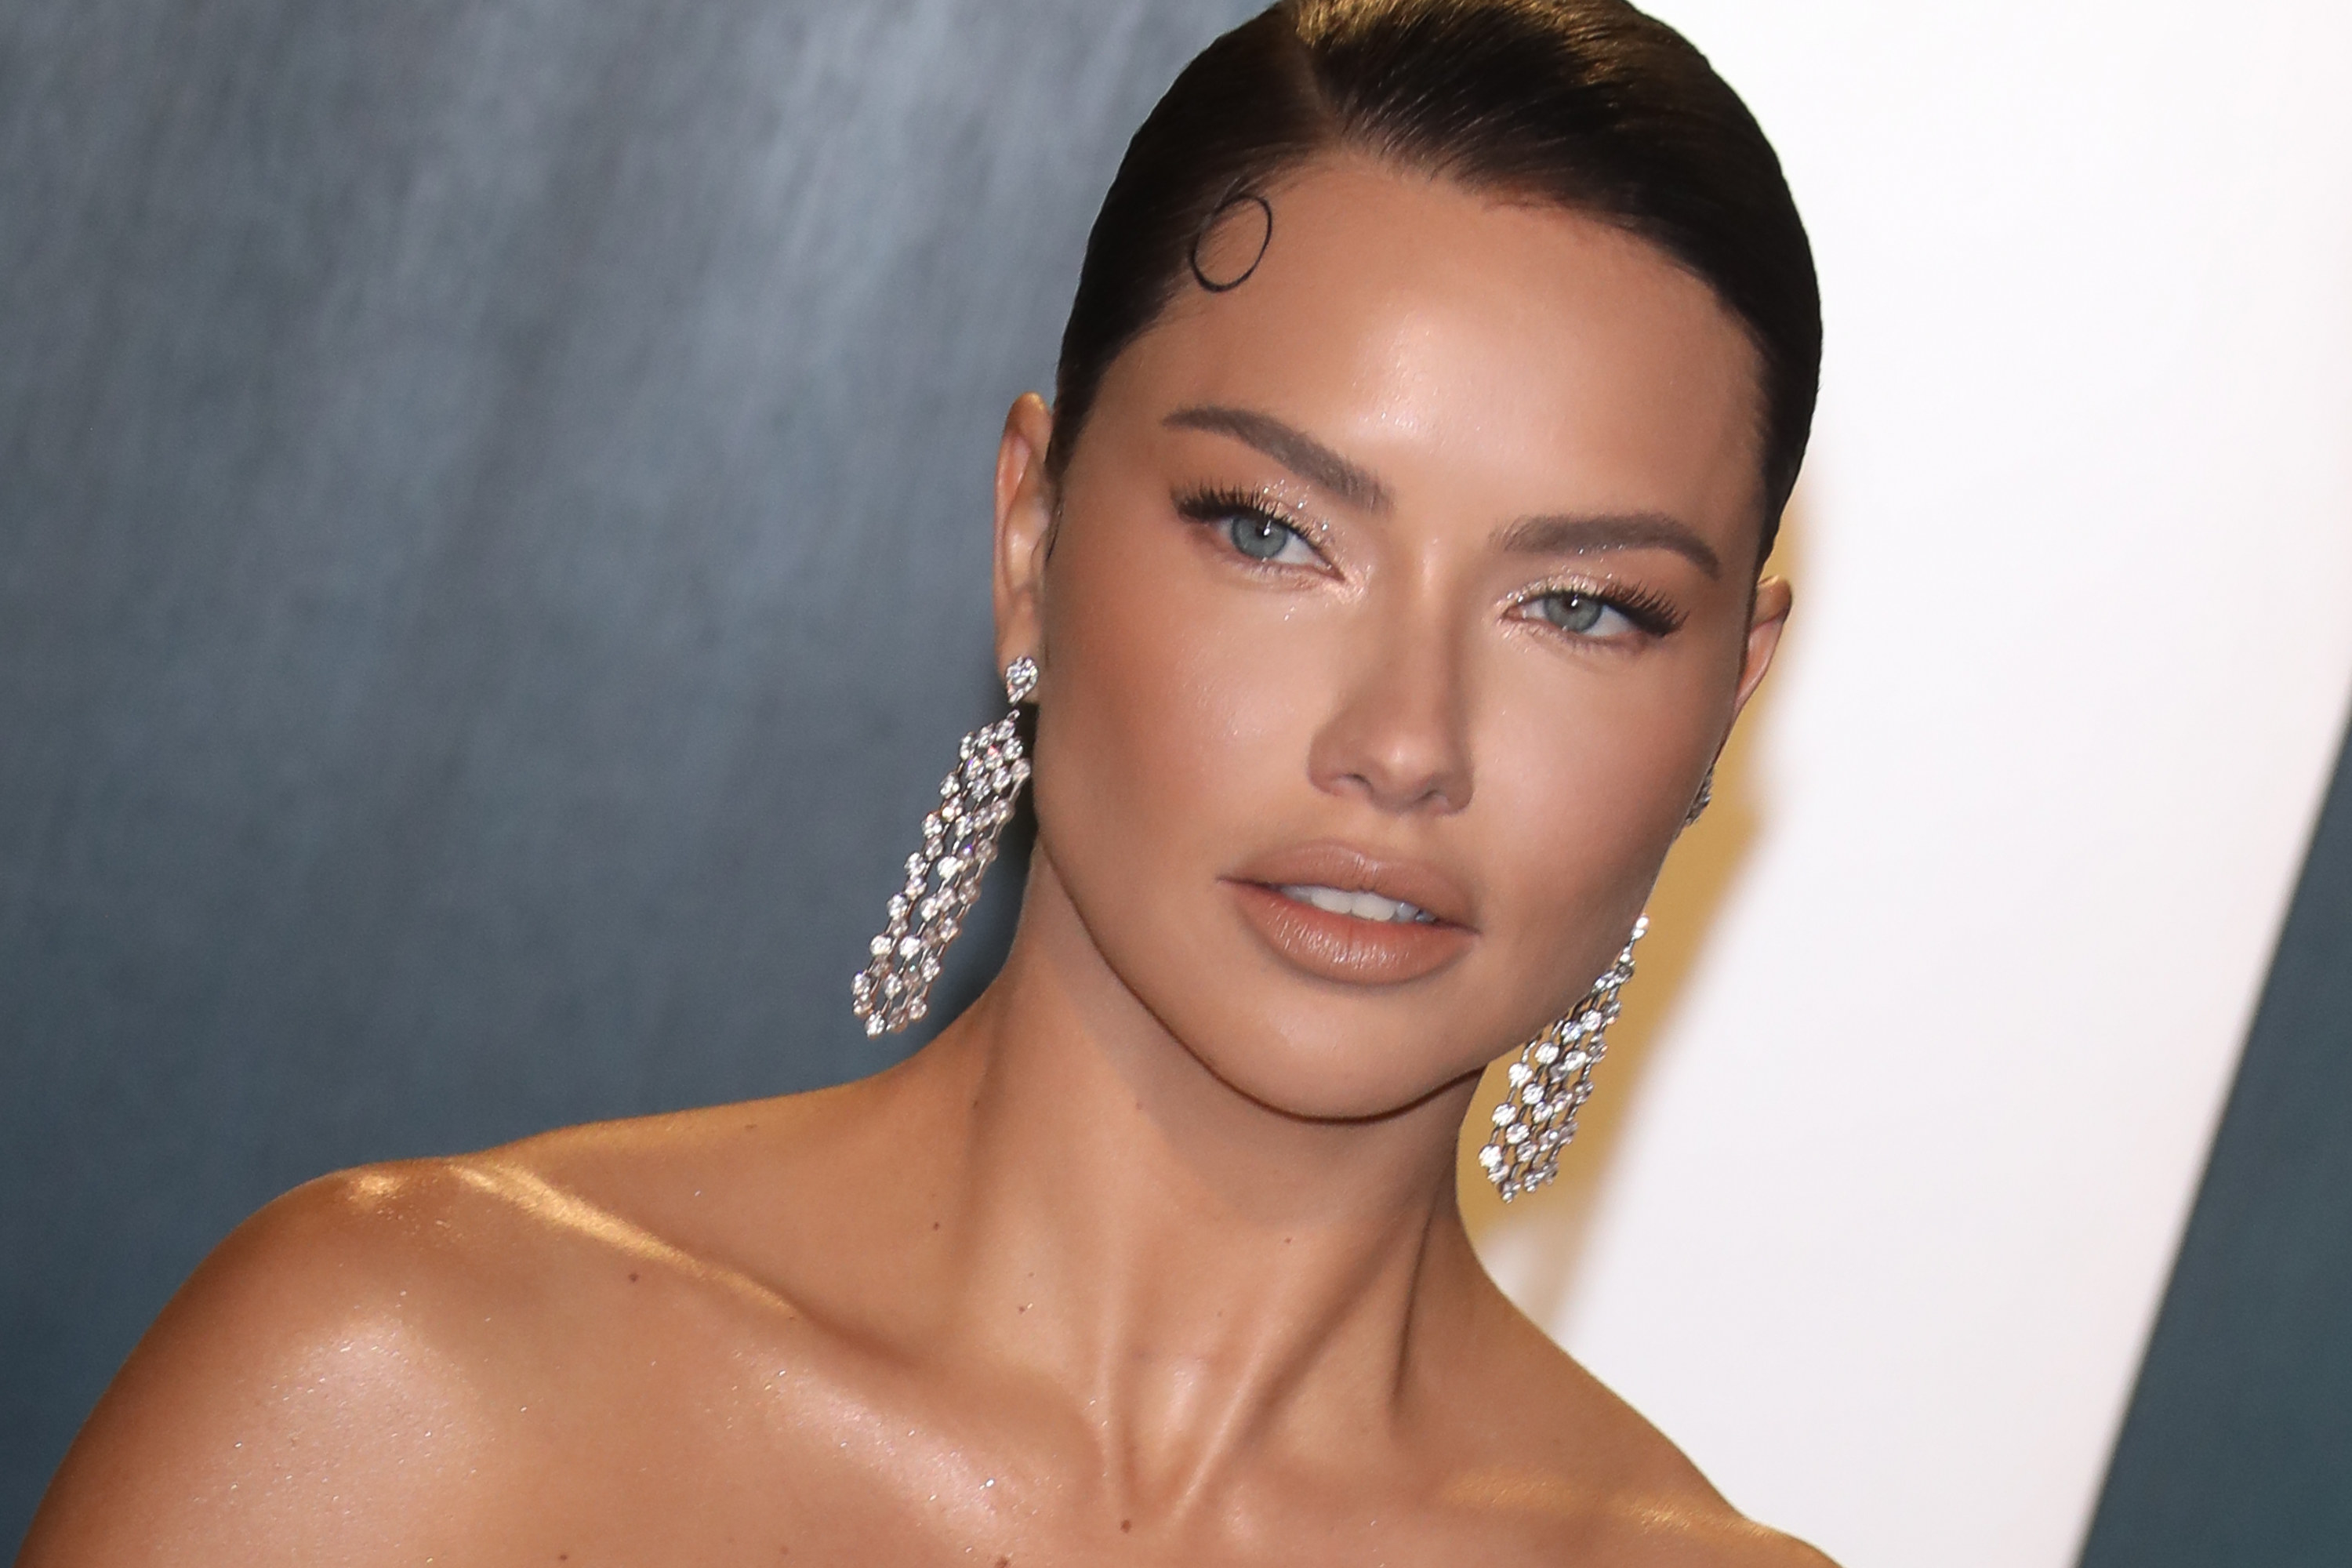 Adriana Lima is photographed on the red carpet during the 2020 Vanity Fair Oscar Party